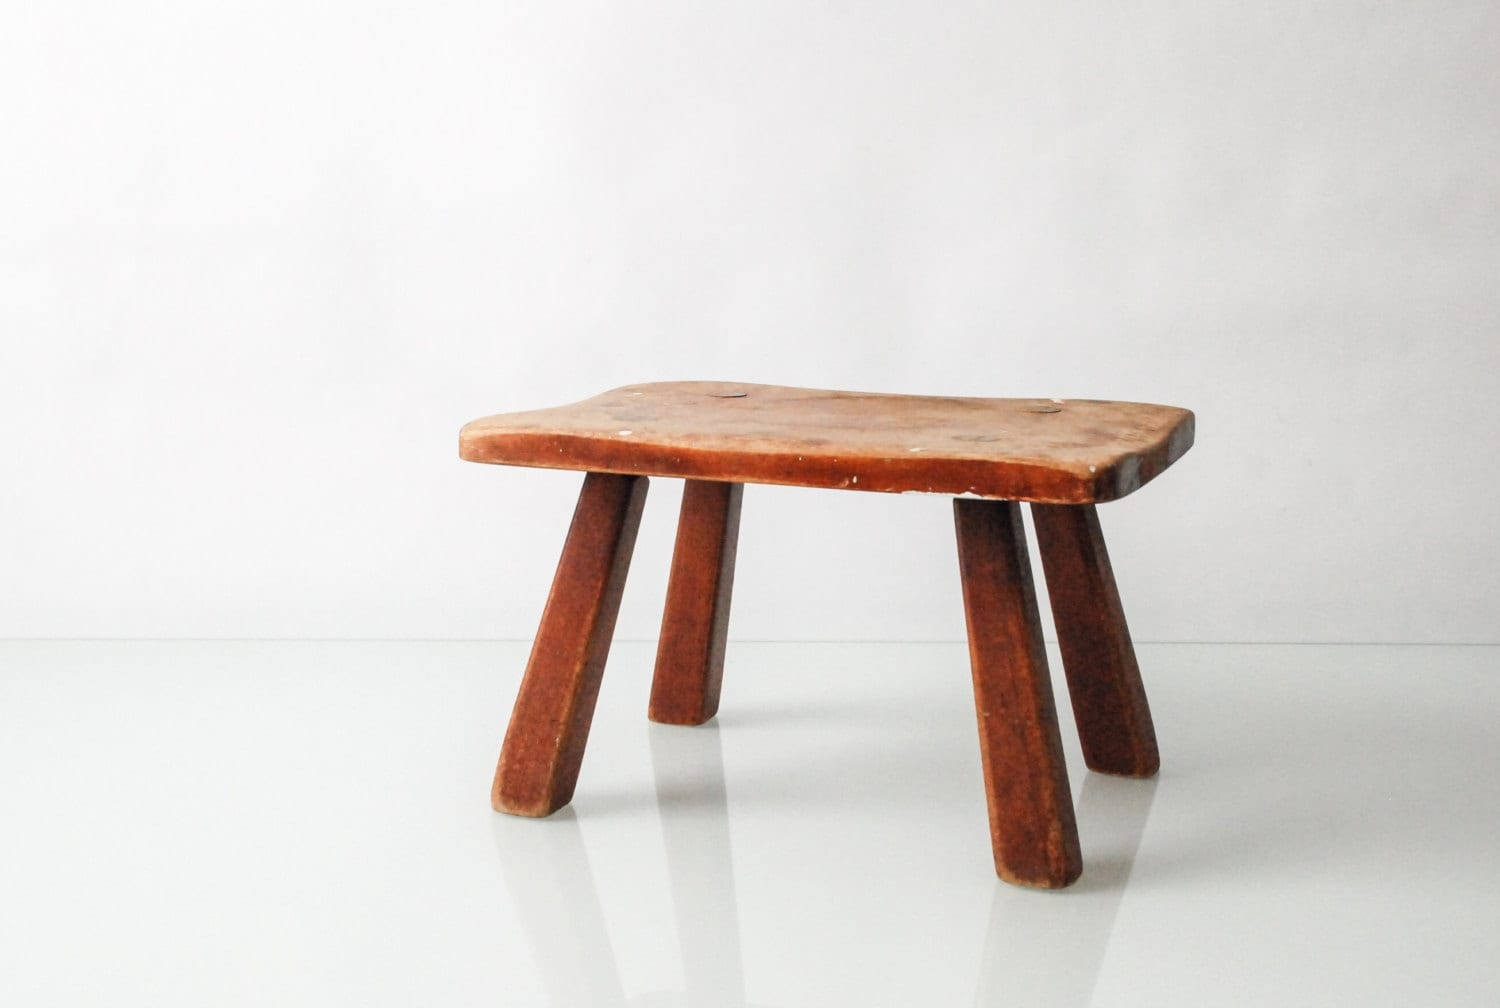 Foot Stool Wood Foot Stool Small Stool Farm Milking Stool